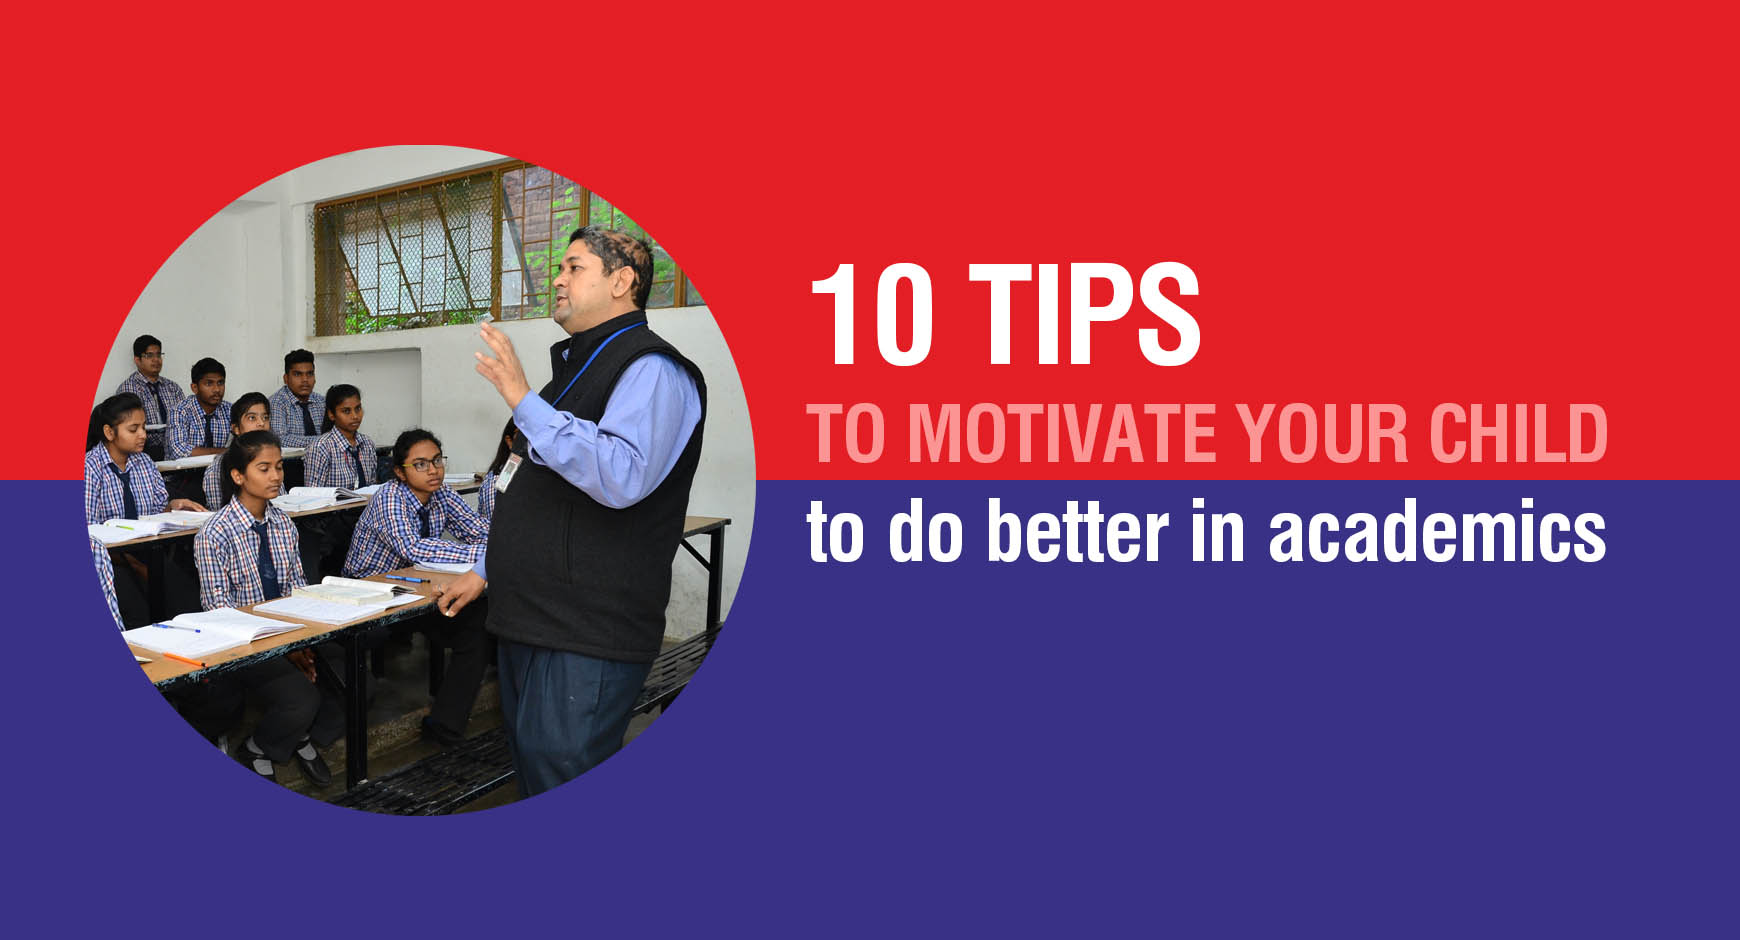 10 tips to motivate your child to do better in academics